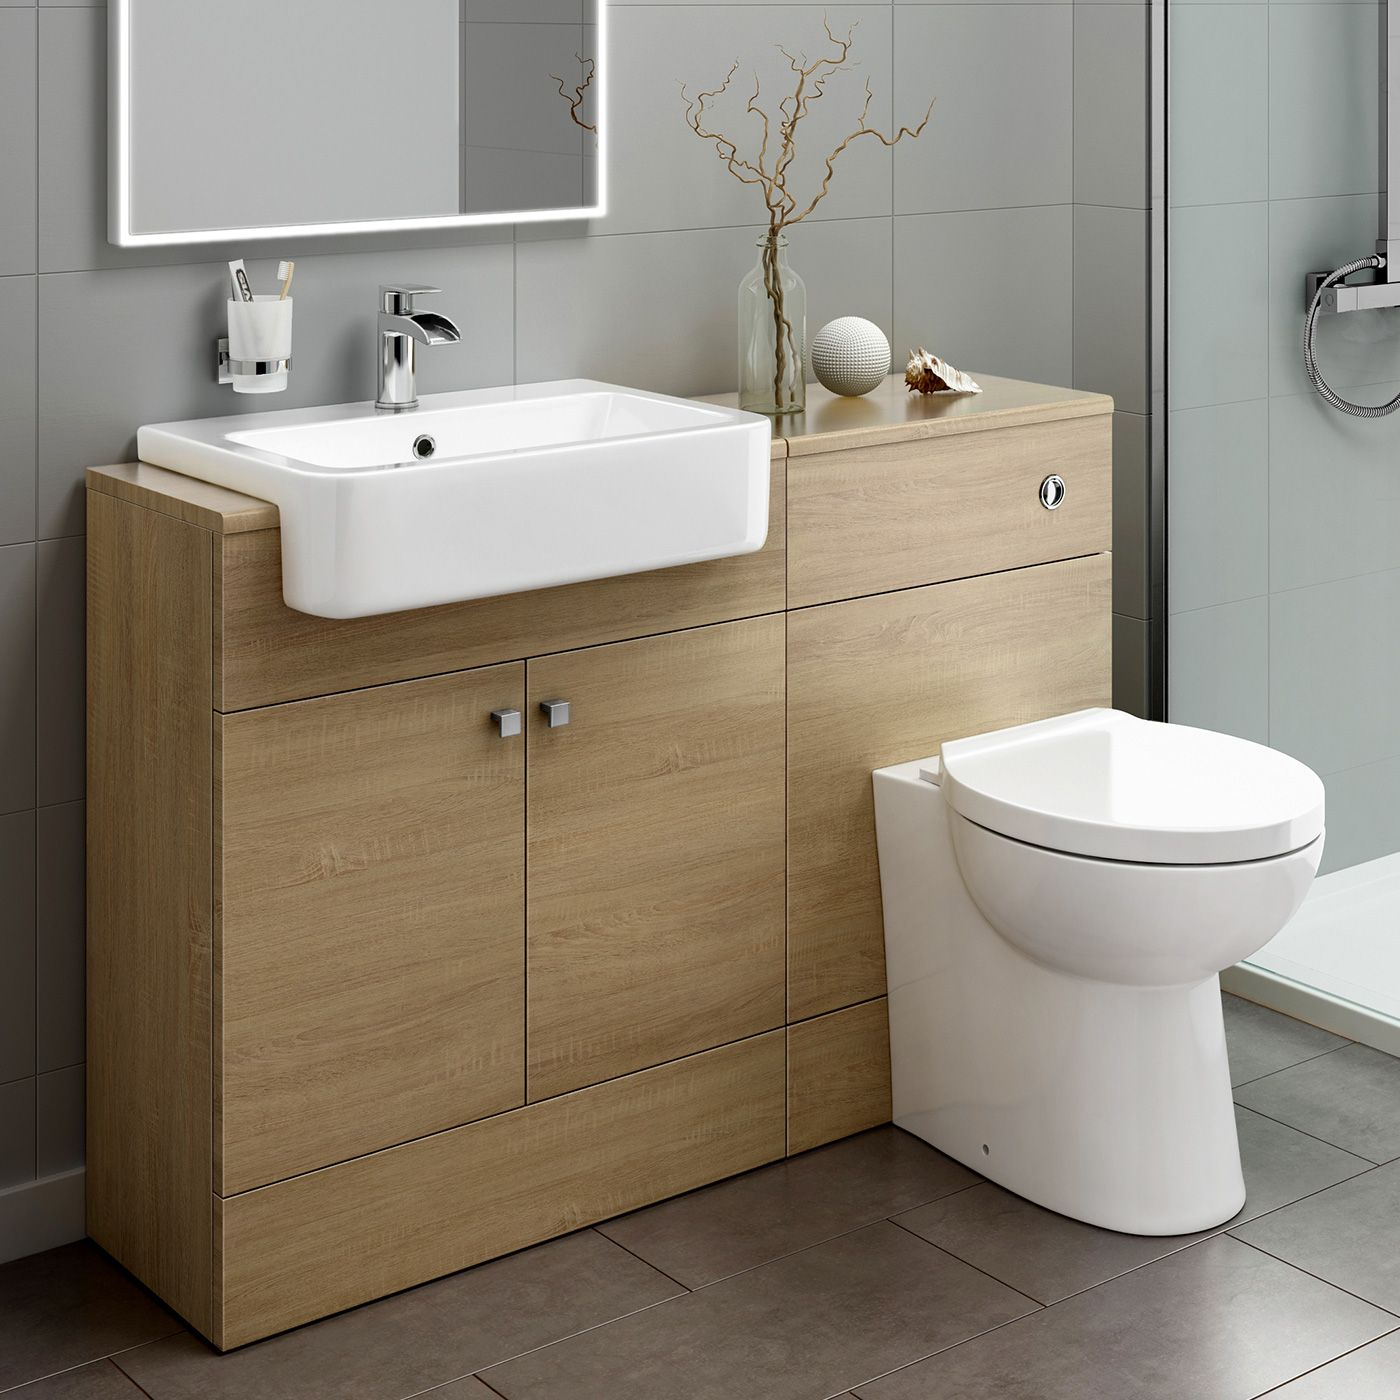 Are you looking for the bathroom of your dreams? Stunning at low